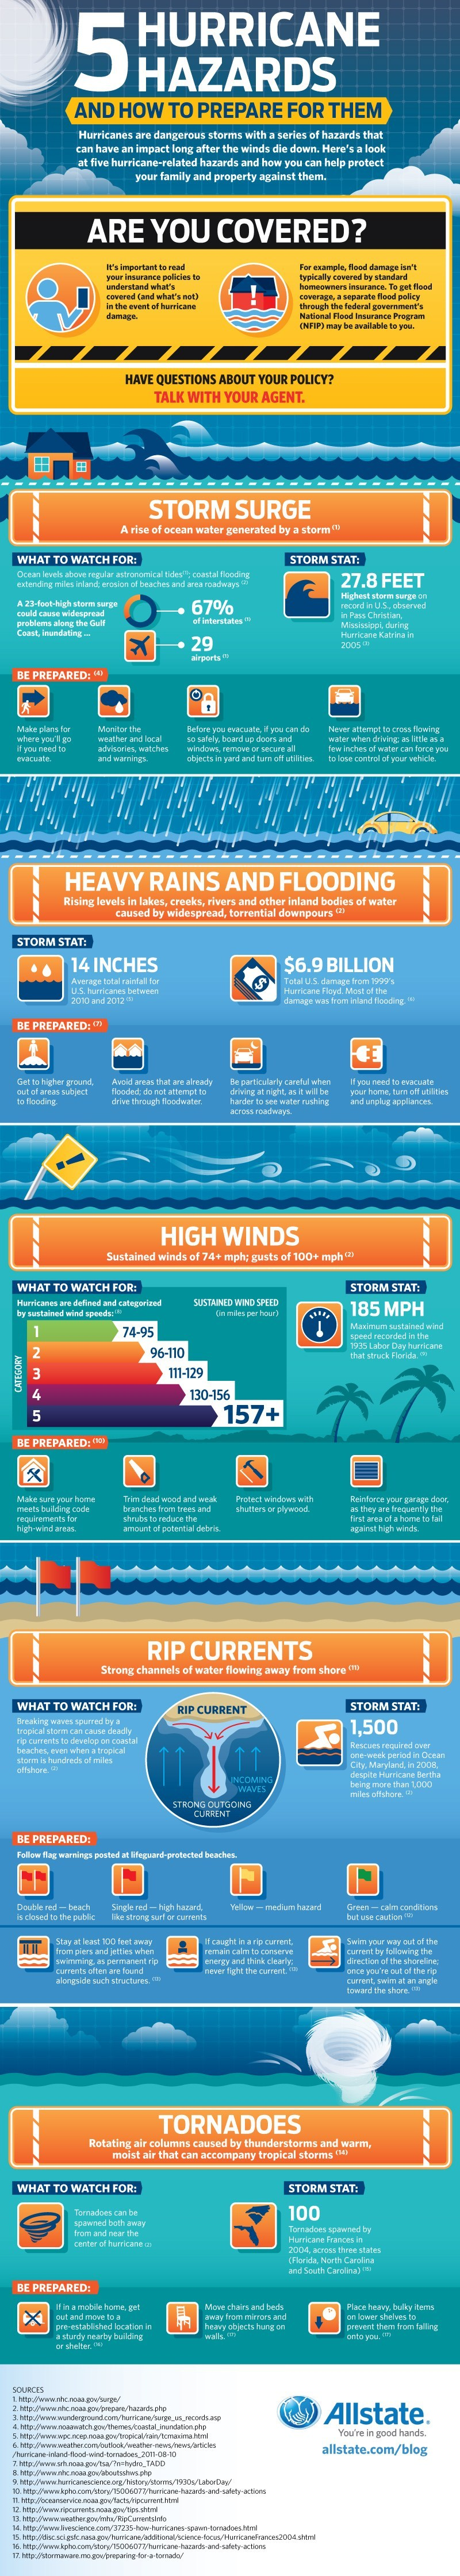 hurricane_hazards_and_how_to_prepare_for_them